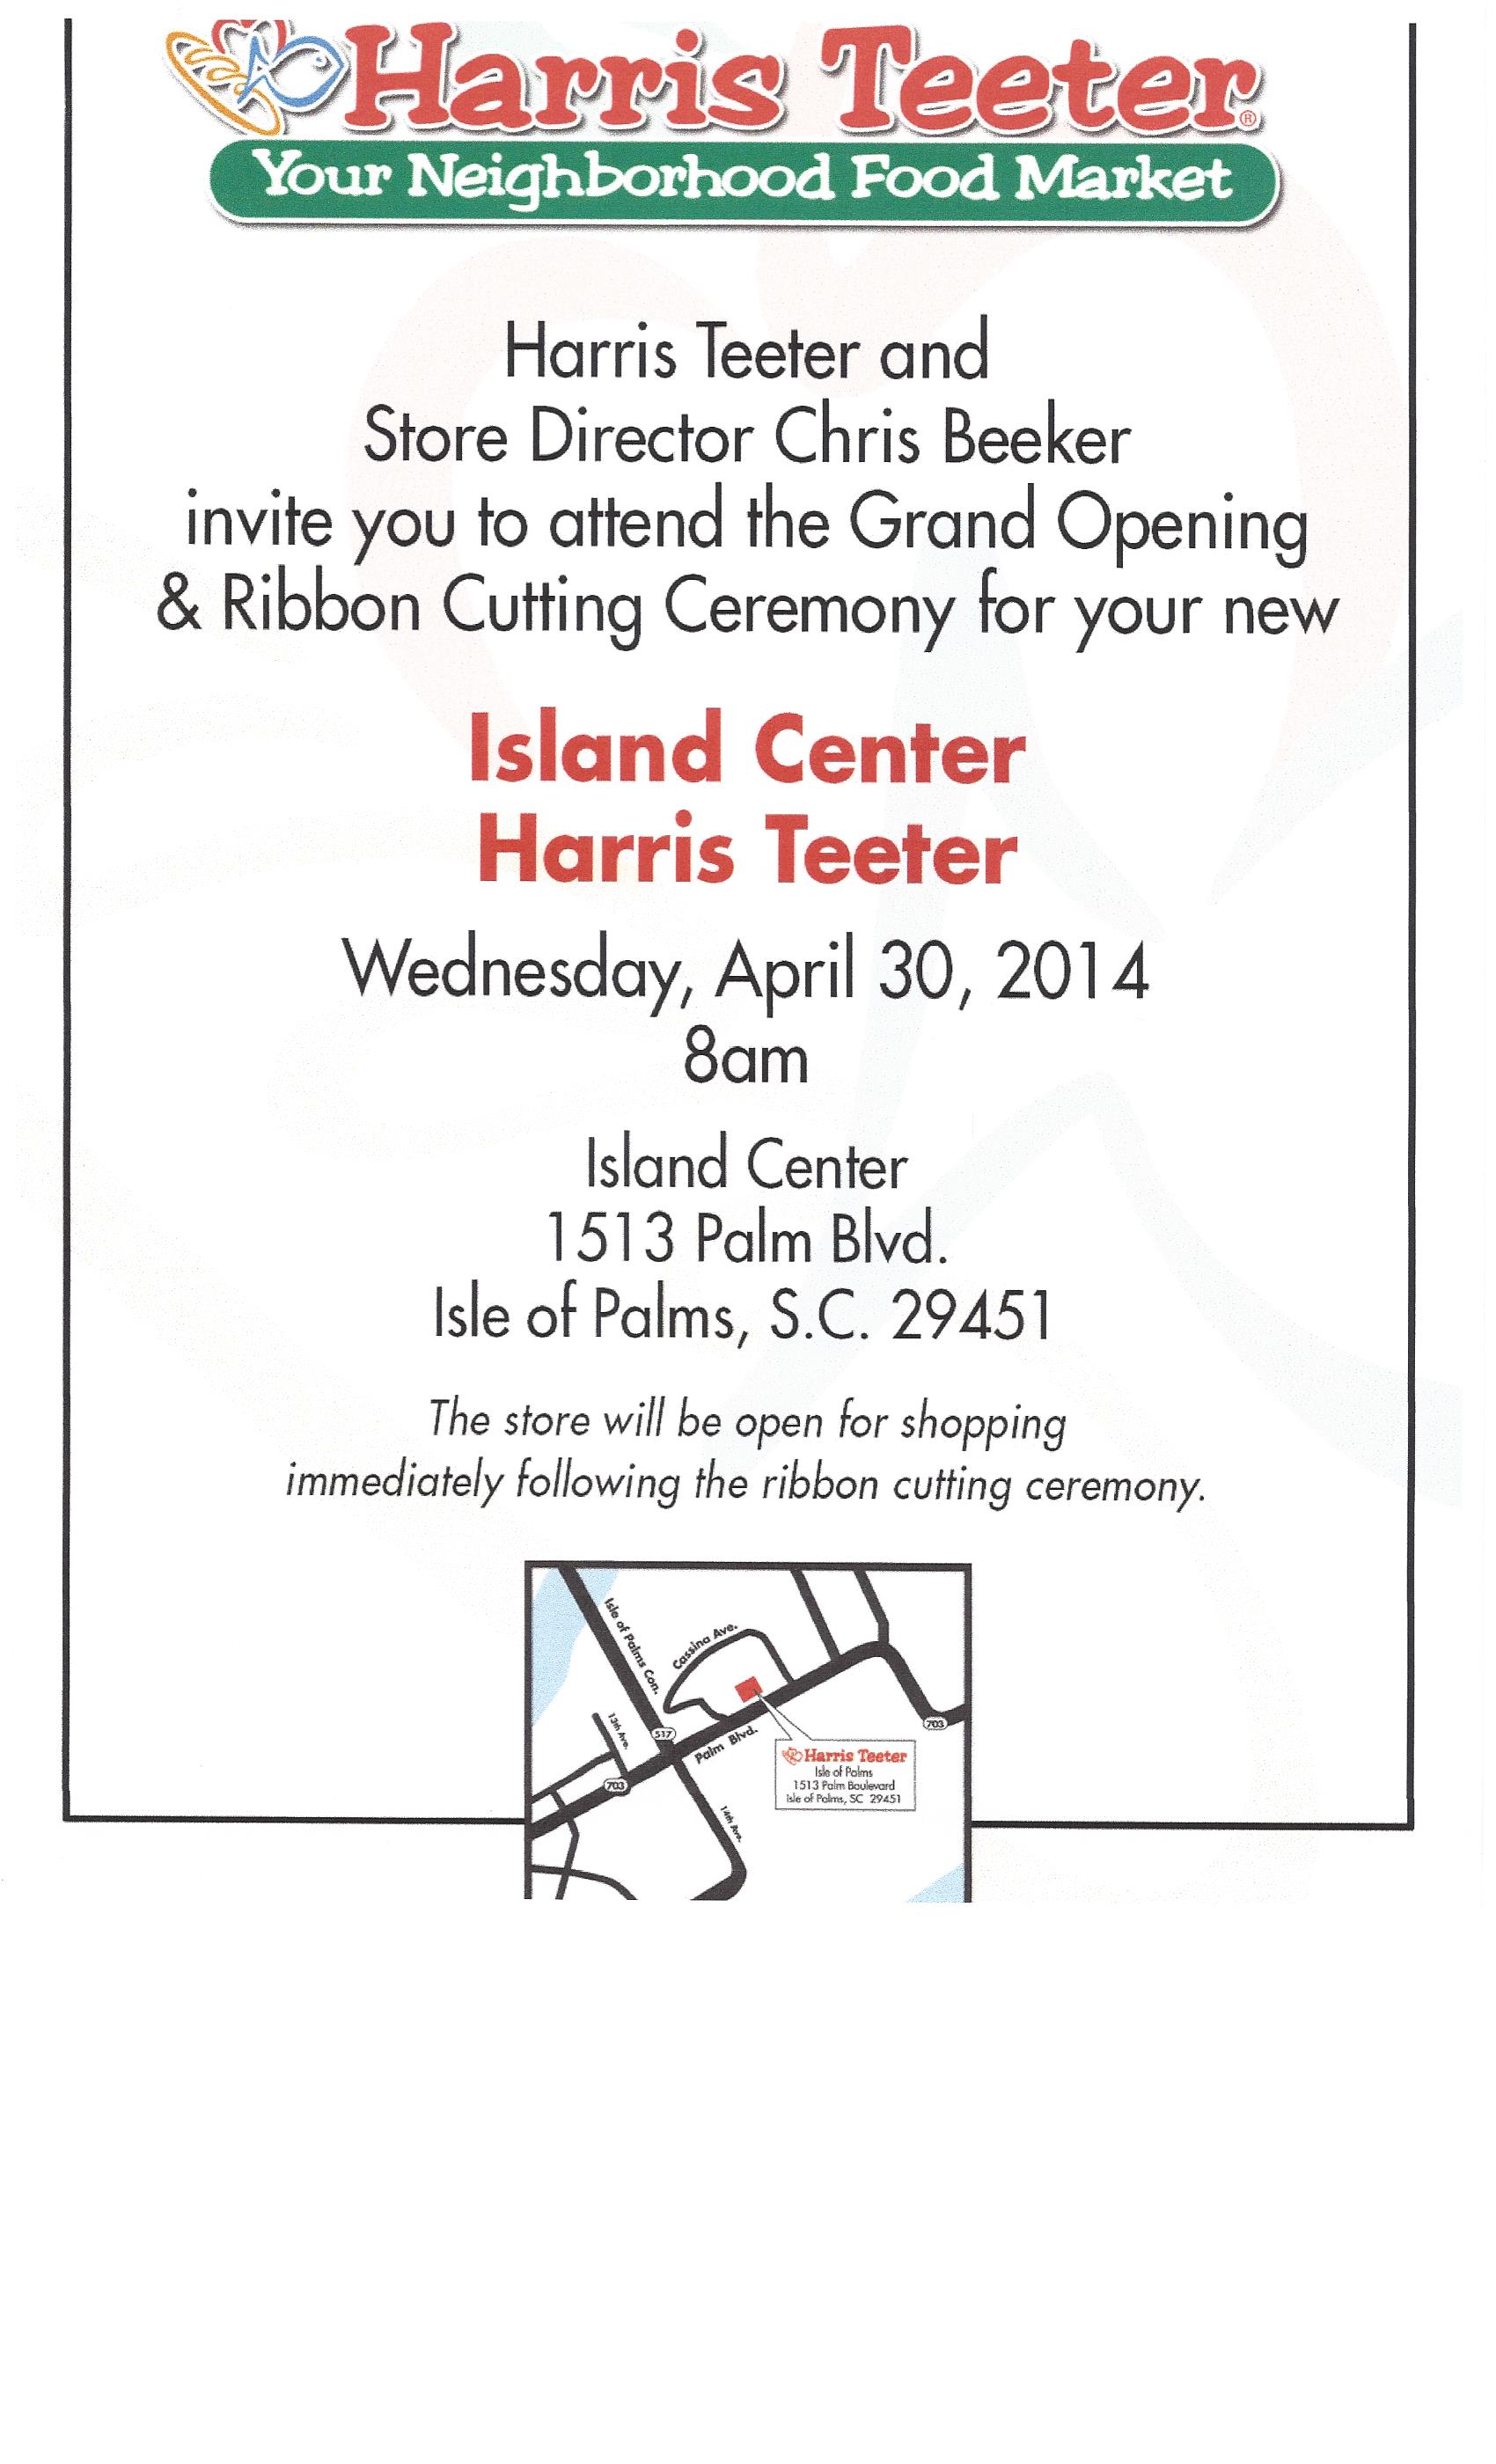 IOP Harris Teeter Grand Opening | IOP Today - Current Happening on ...